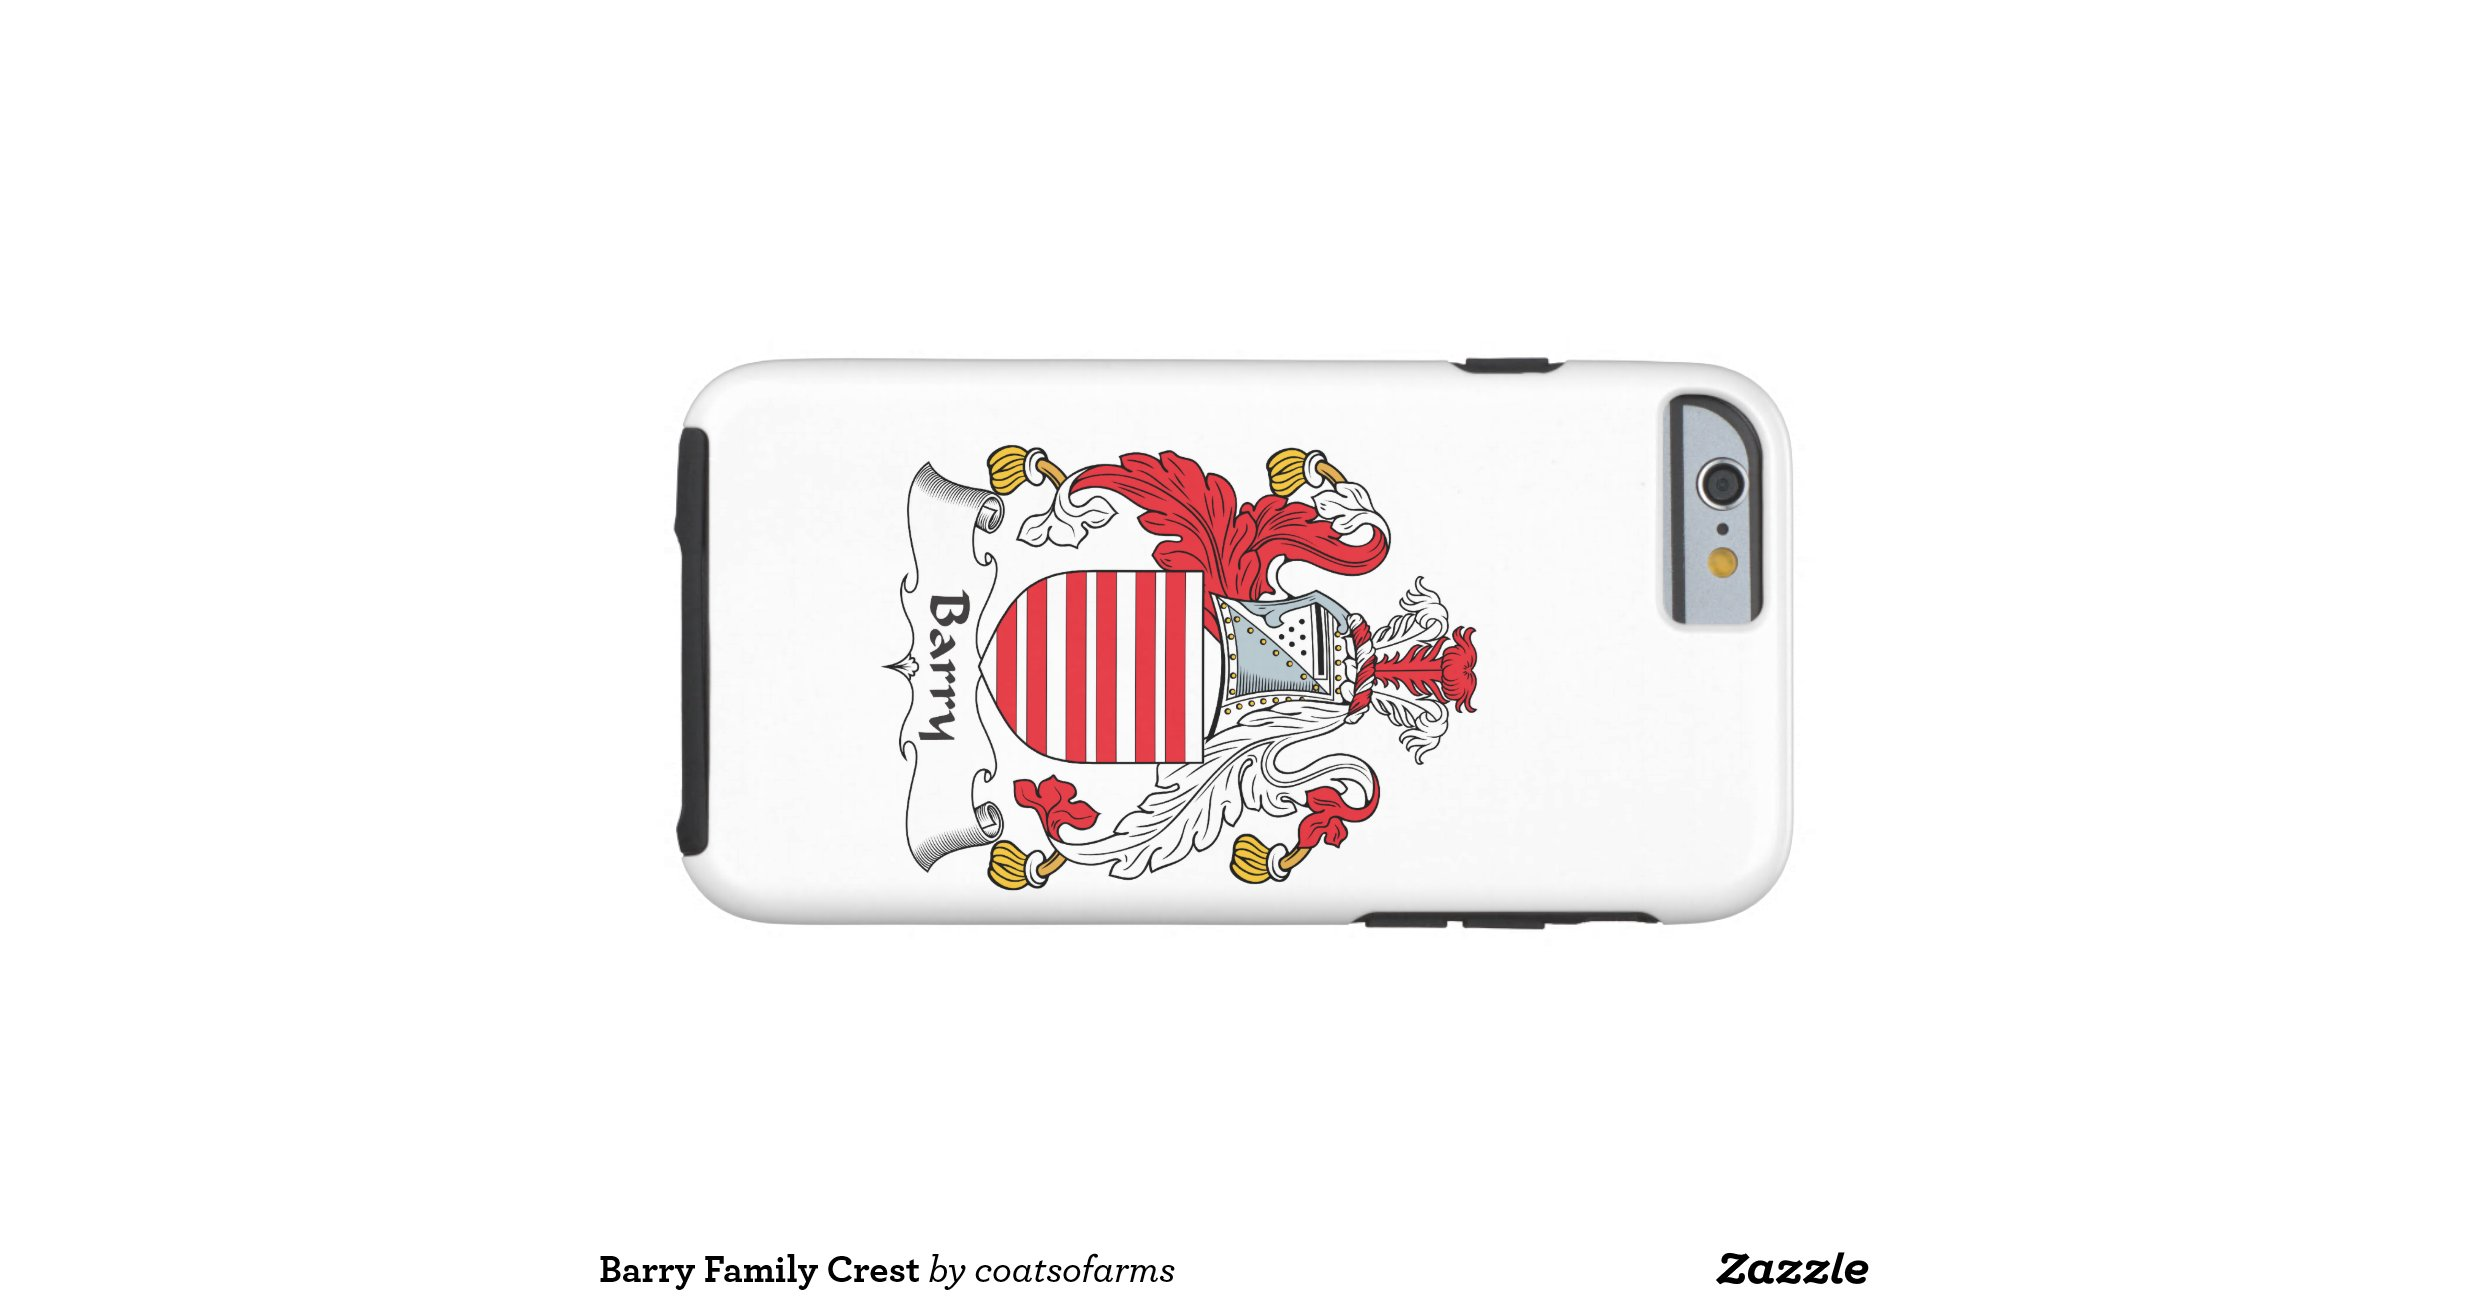 Floral design in blue nd brown otterbox iphone 6 6s case 256485703711808992 together with 13161194 Dan And Phil besides Deer skull tribal tattoo iphone 5 cases 179674157582185934 as well 384663 further Call jesus name tough iphone 6 case 179754447770131172. on iphone 4 protective phone cases